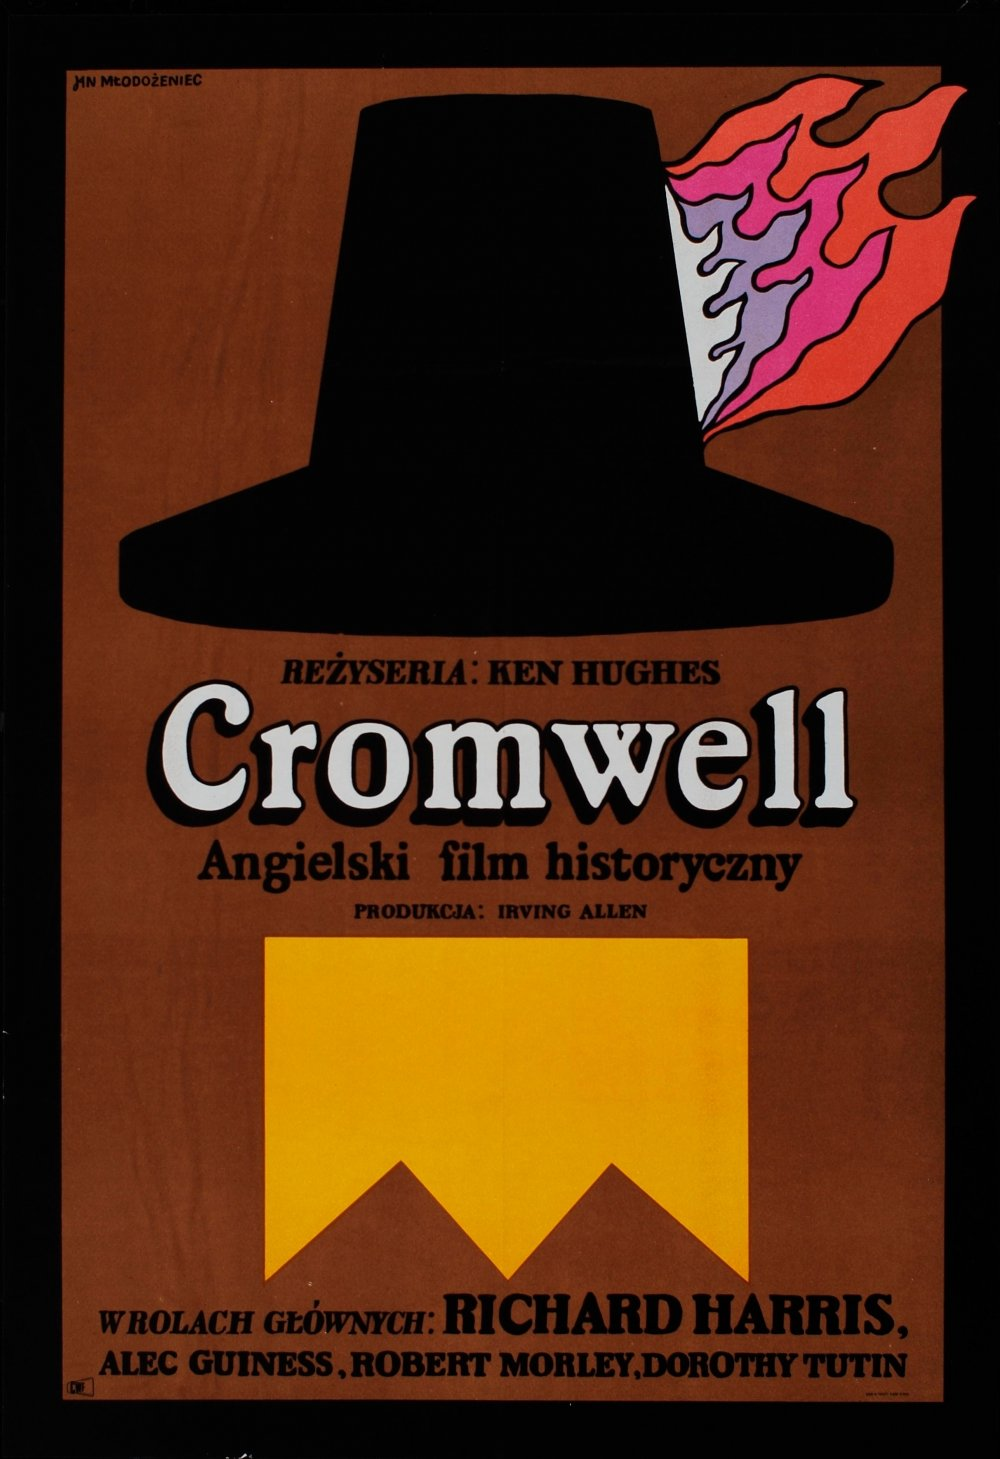 Poster for Cromwell (1970) by Jan Młodożeniec